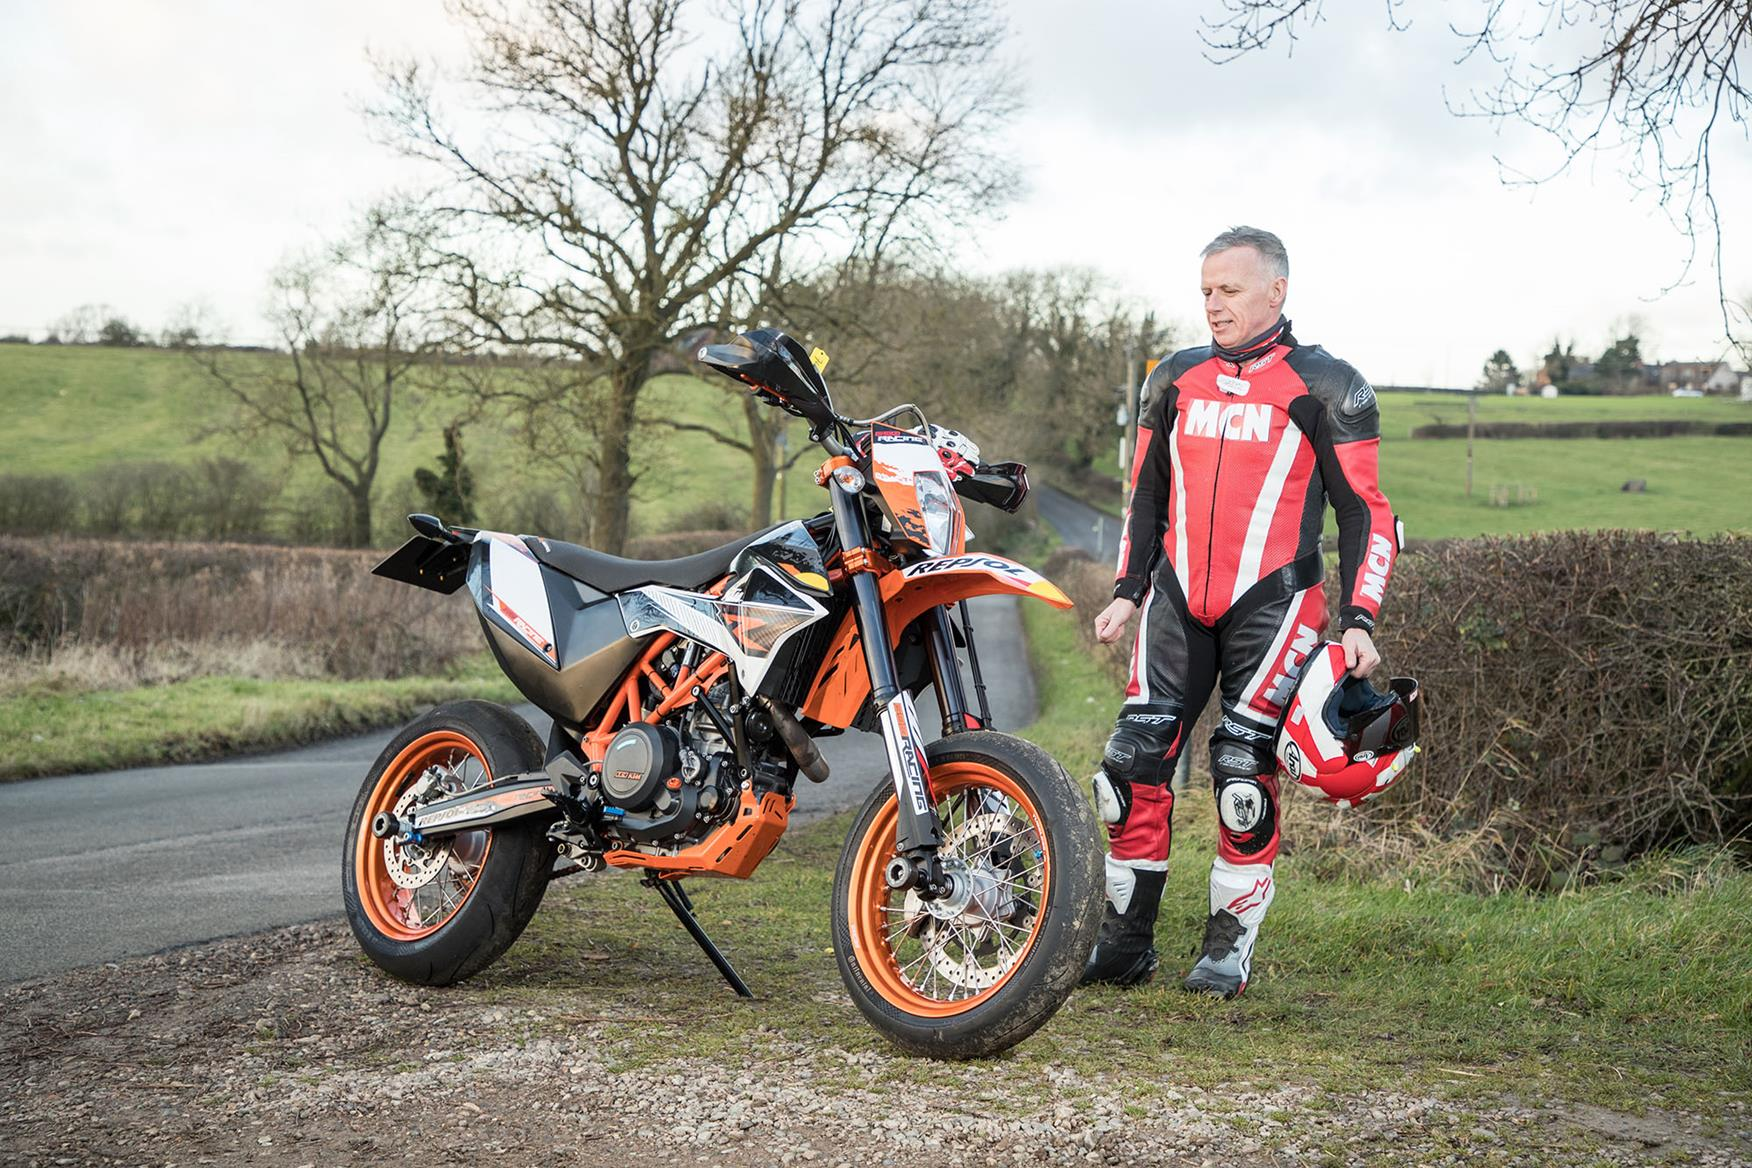 KTM 690 SMC R can't fail to excite